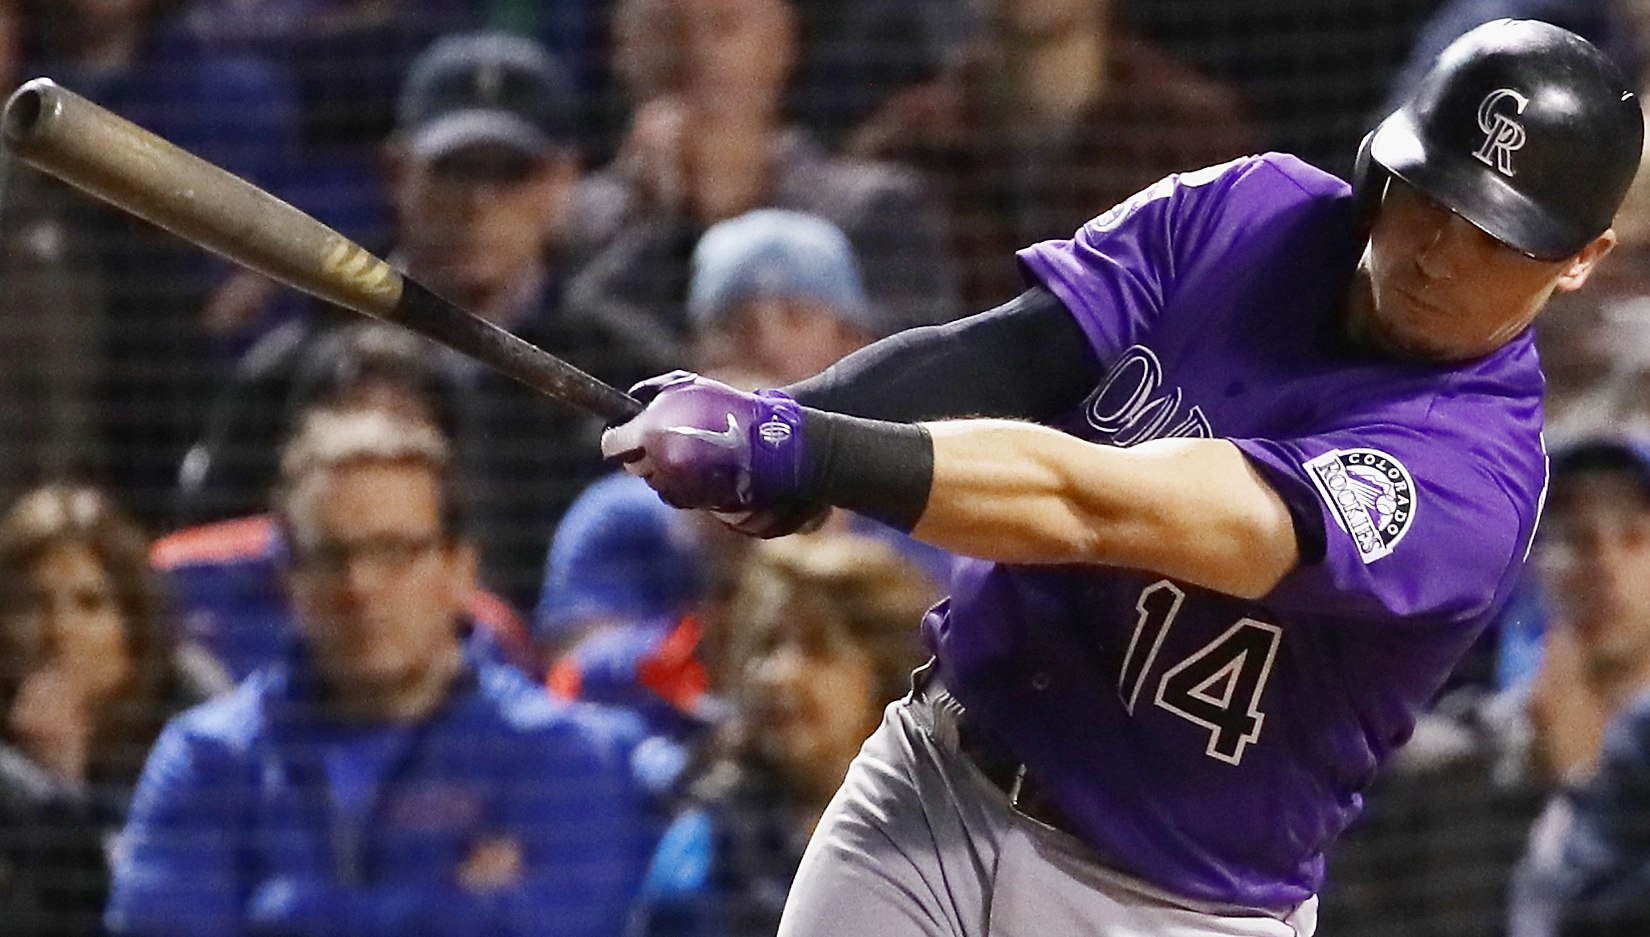 Mlb Baseball News Colorado Rockies Outlast Chicago Cubs In Longest